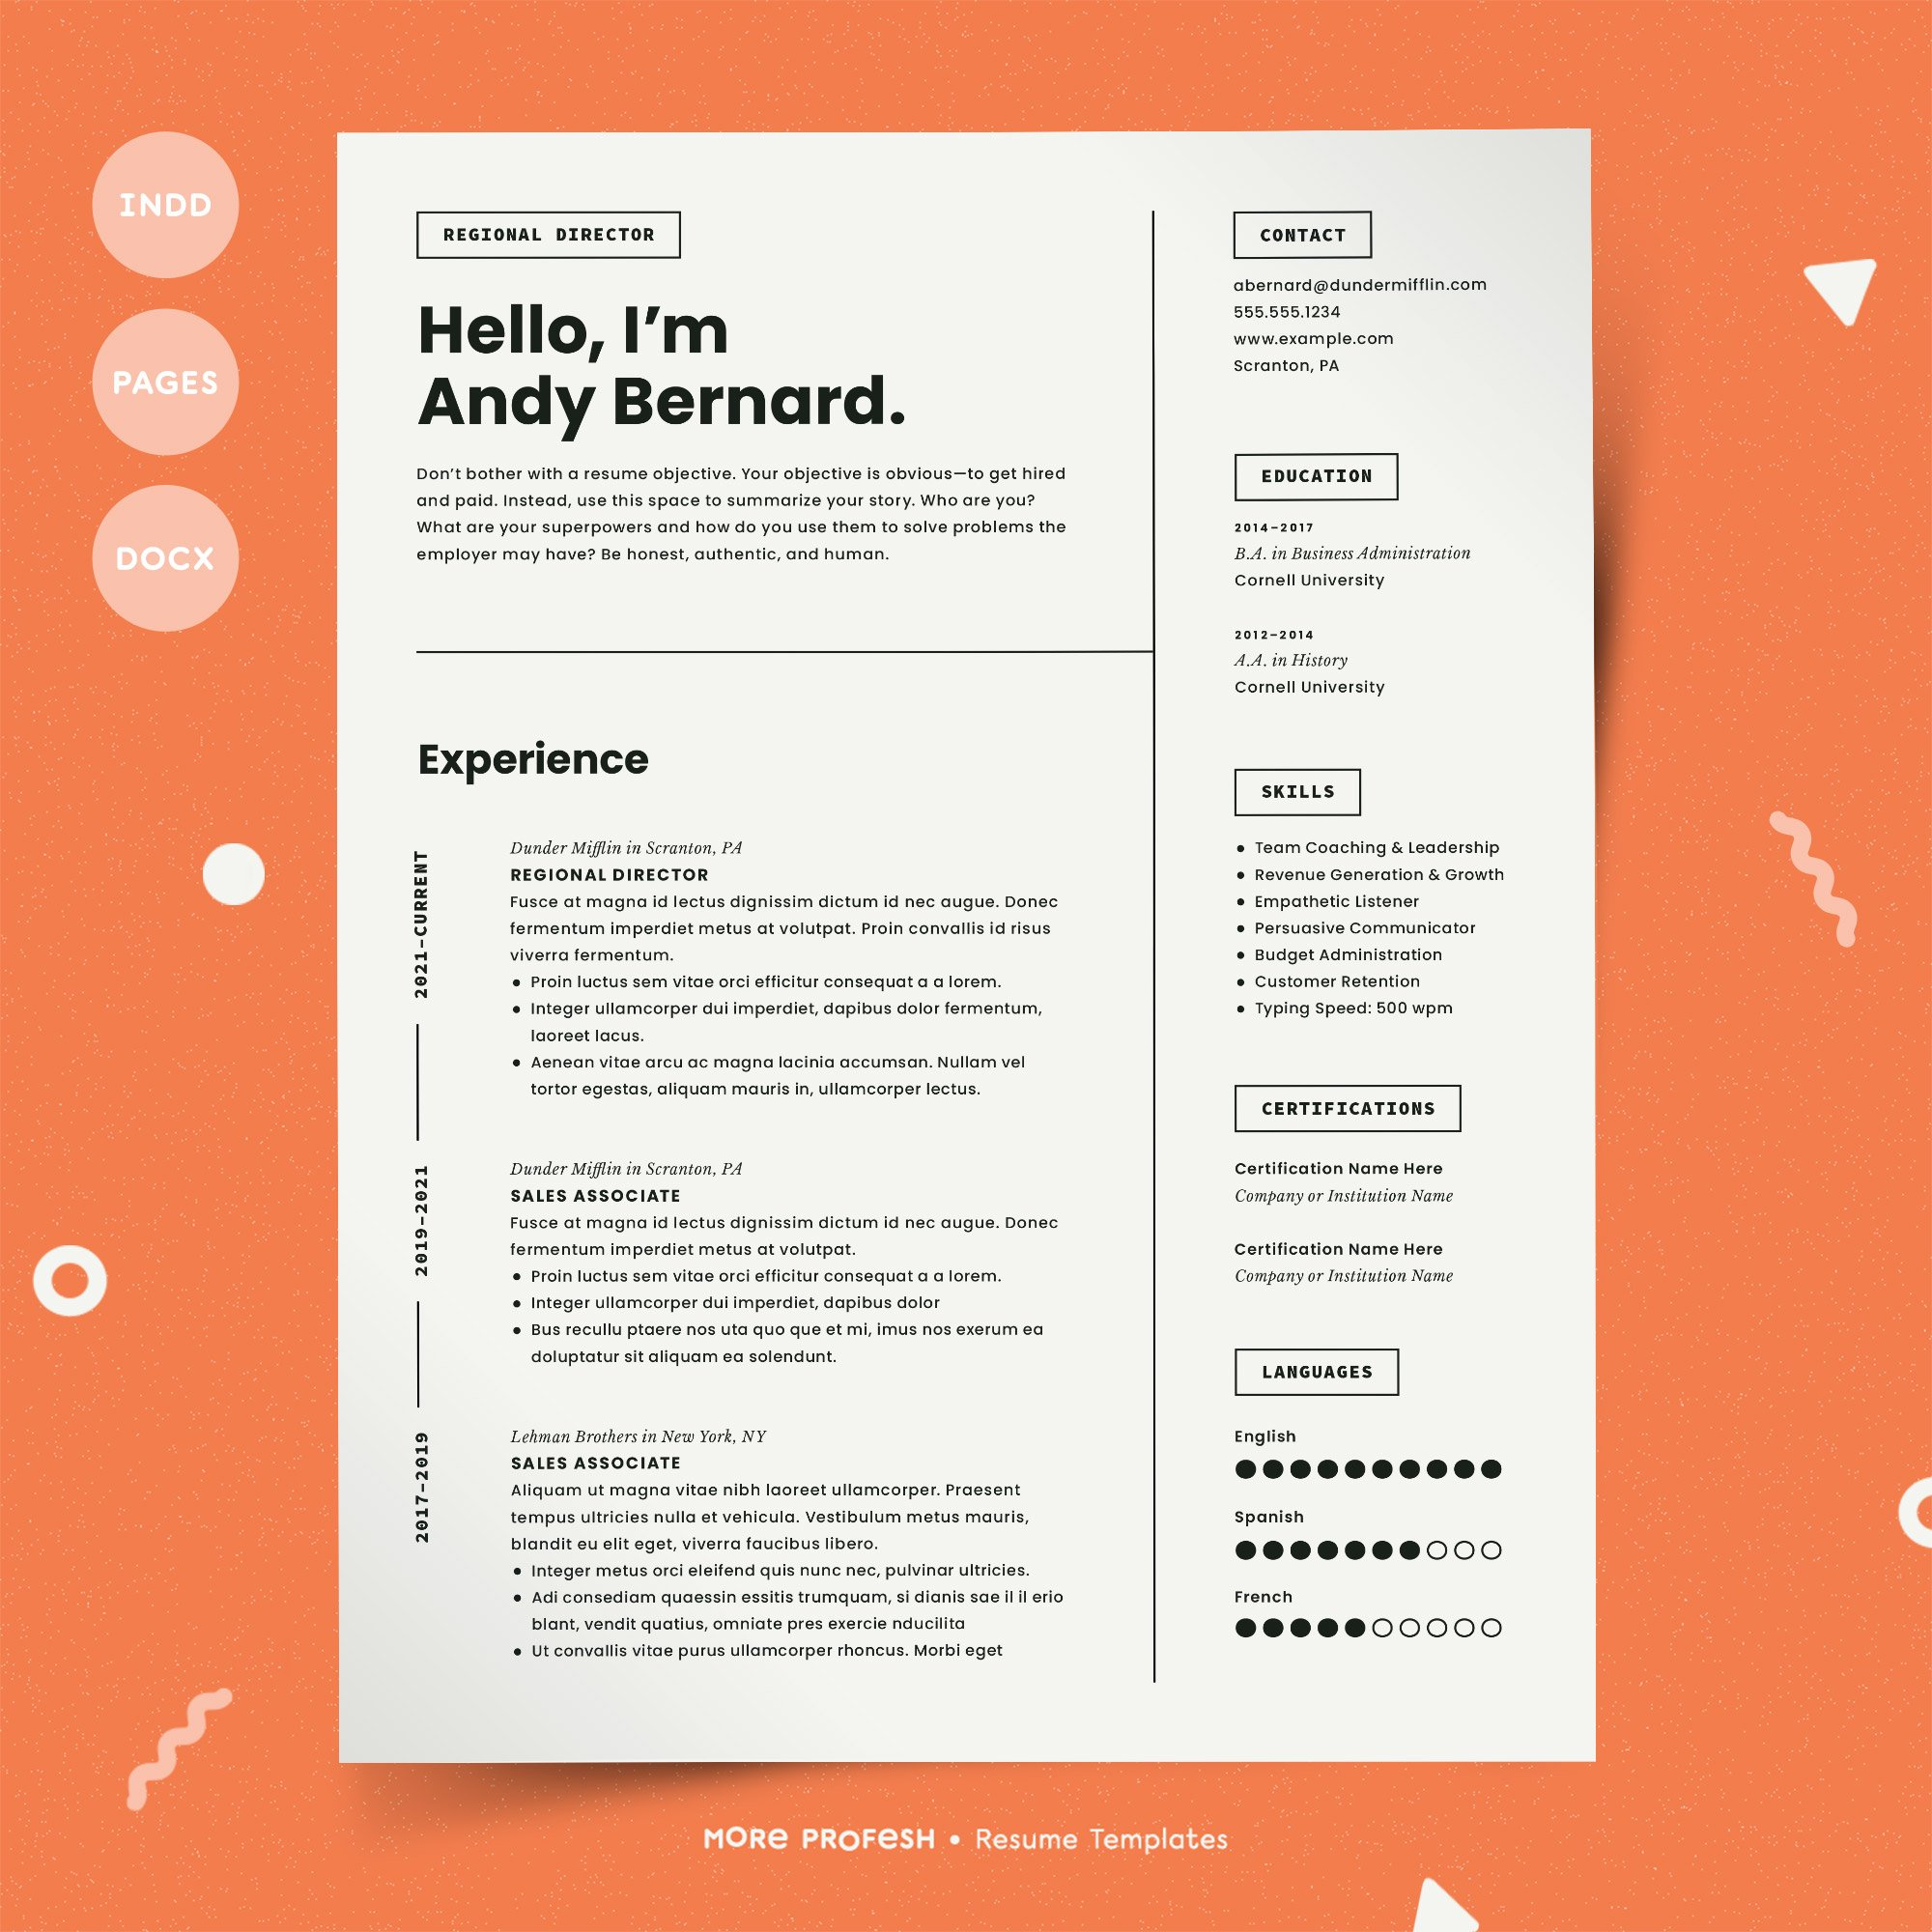 Template Cv 2019 from images.creativemarket.com